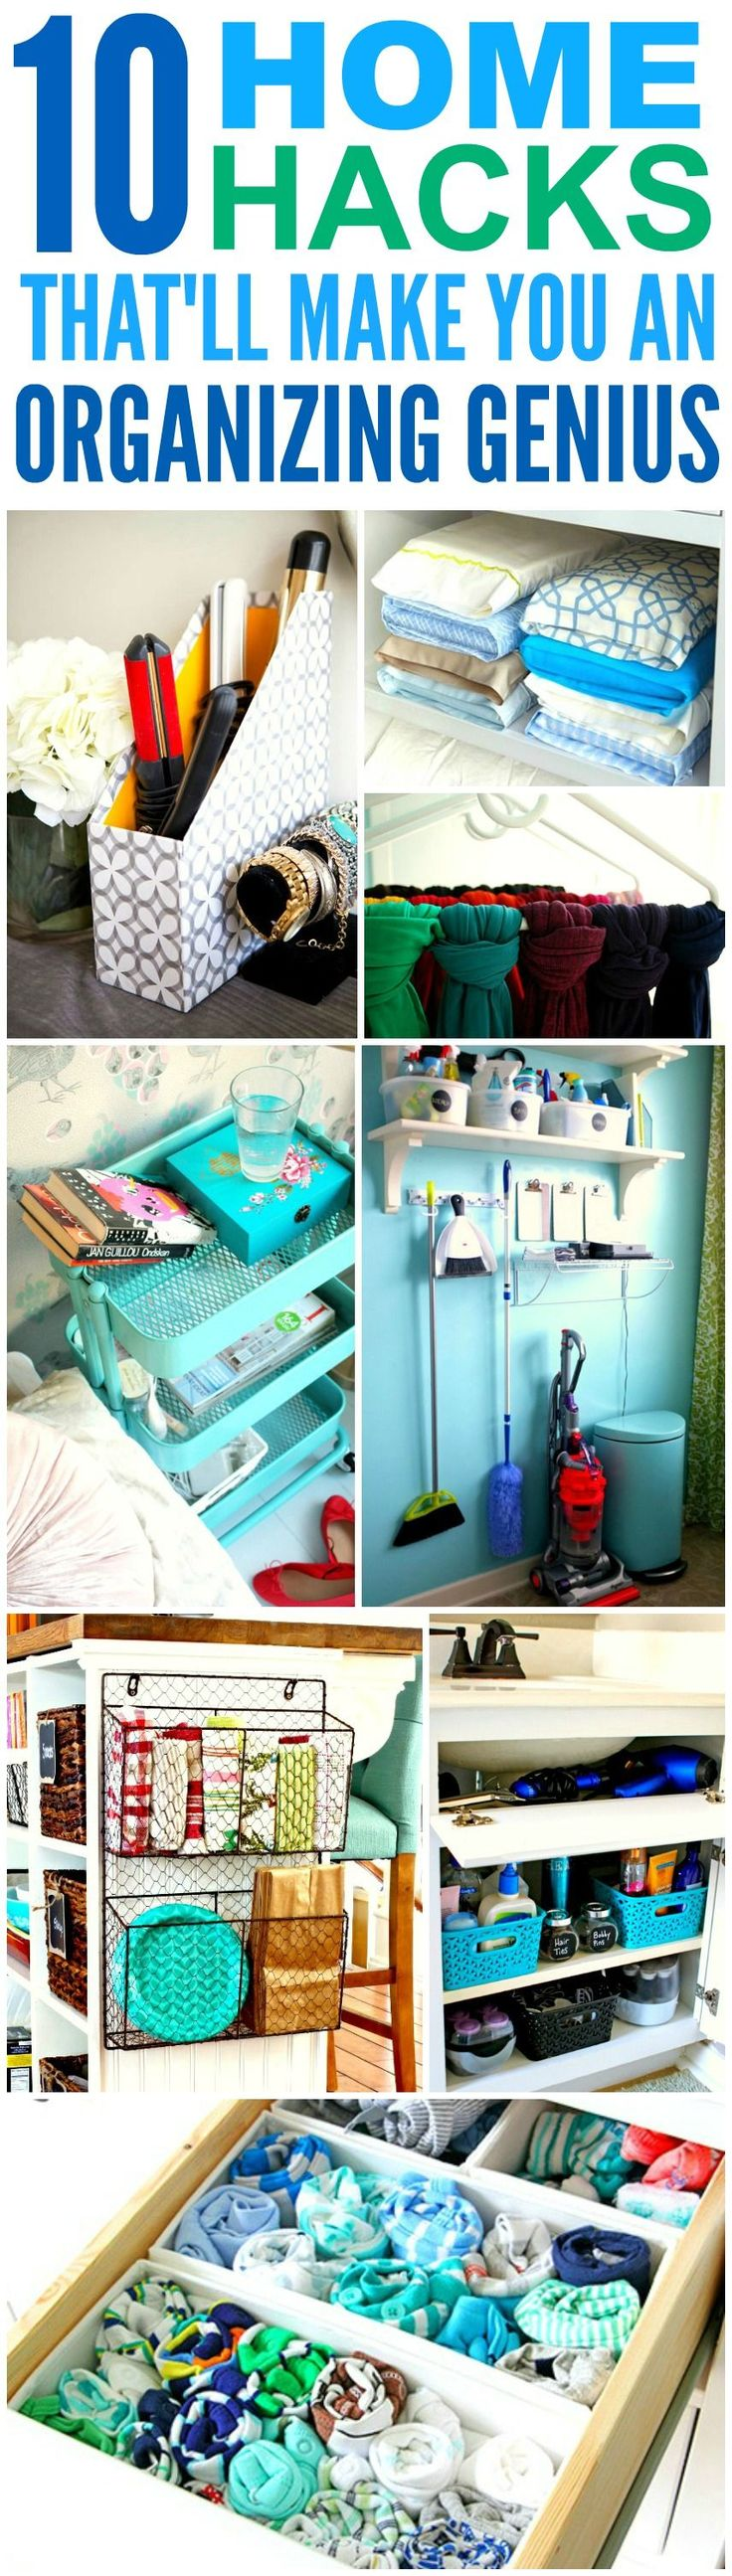 These 10 home hacks that'll made you an organization genius are THE BEST! I'm so glad I found these AMAZING tips! Now I can have a cute and organized house! Definitely repinning for later!